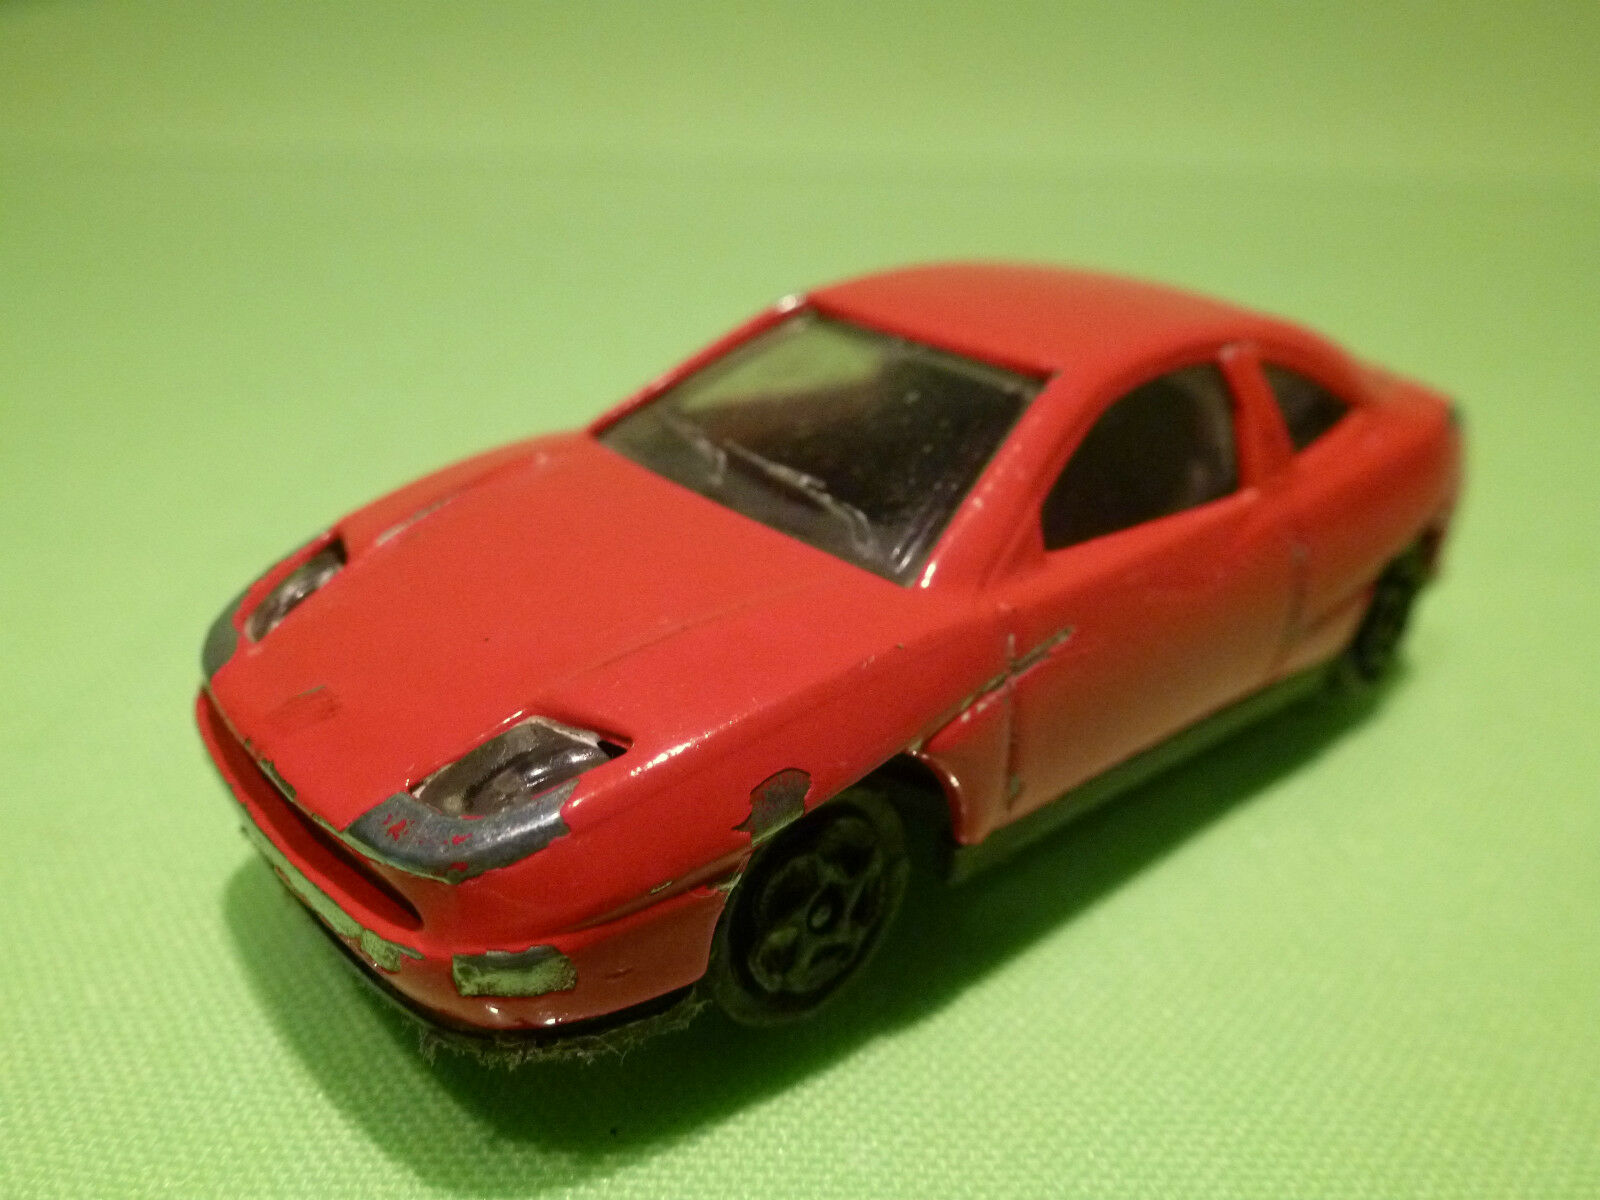 MAJORETTE 201 FIAT COUPE - RED - 1 58 - EXTREMELY RARE -SEHR SELTEN - GOOD COND.